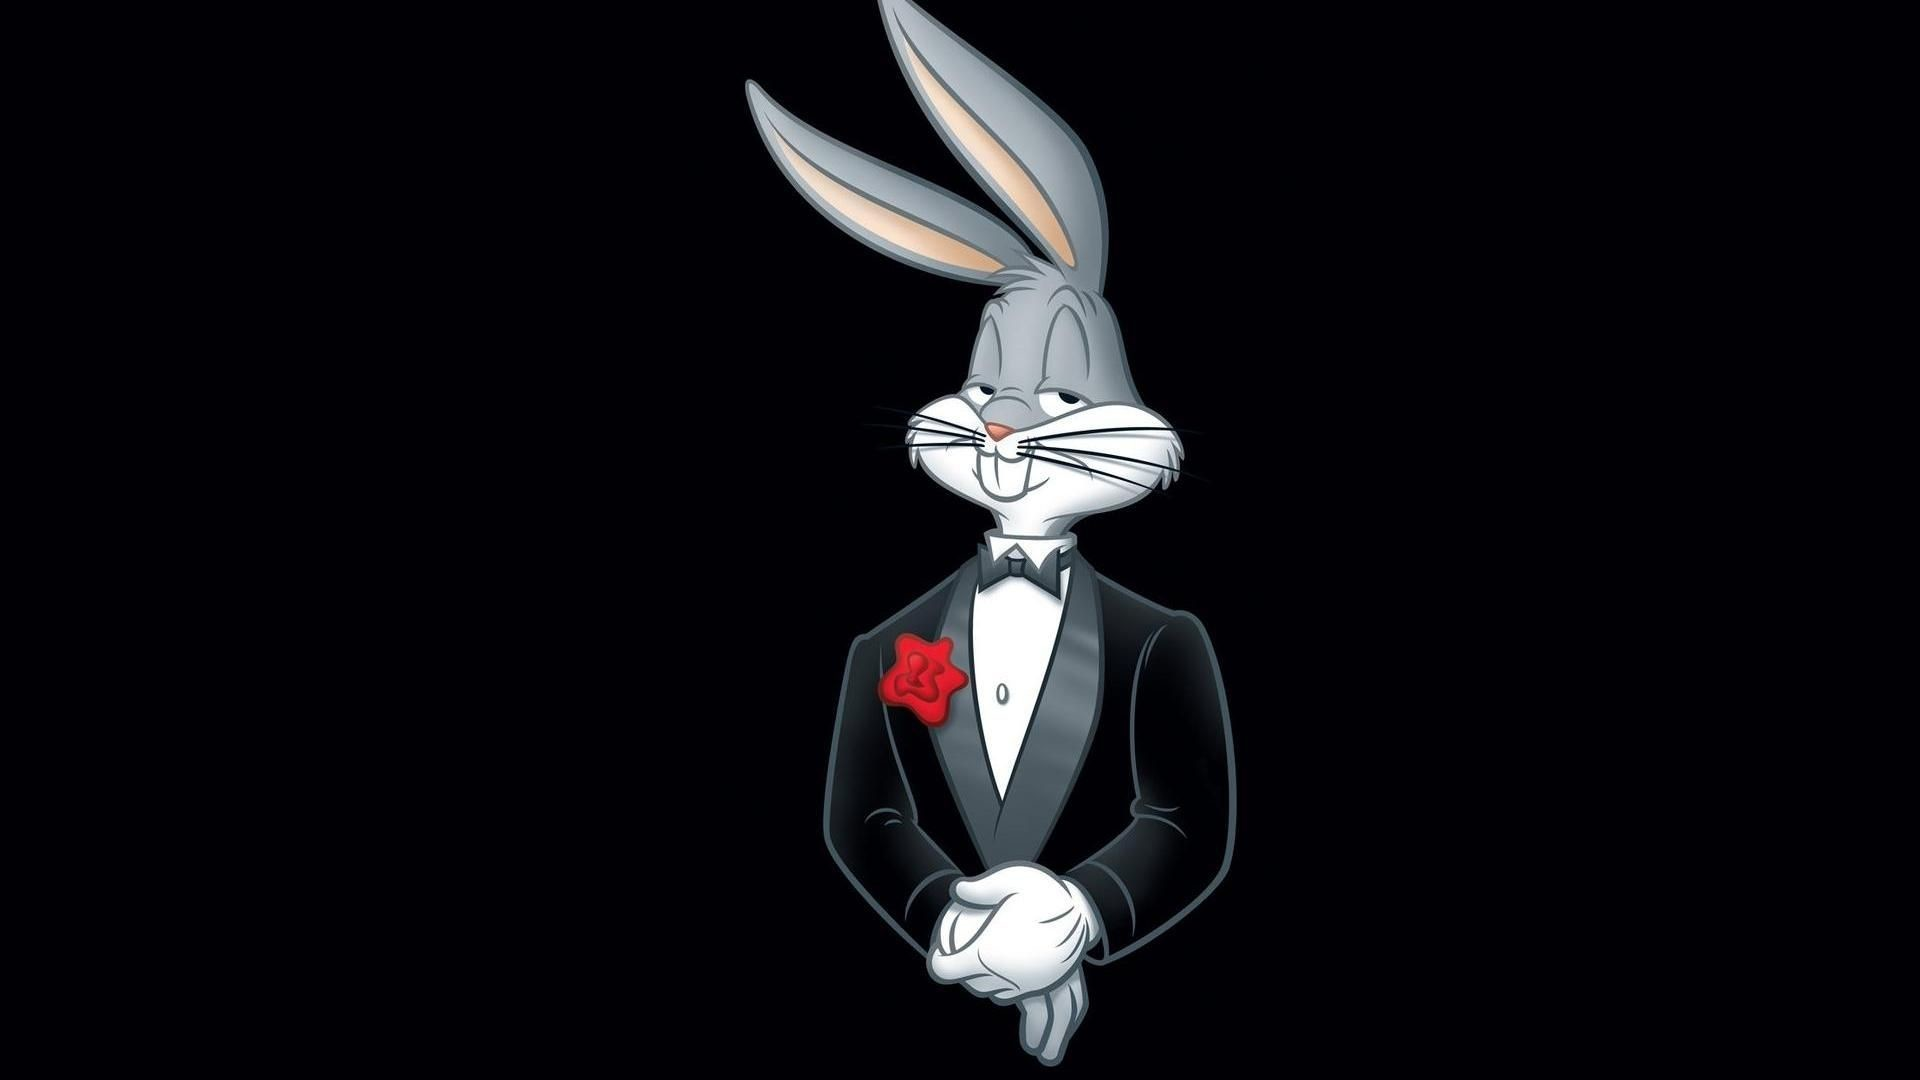 Res: 1920x1080,  bugs-bunny-hd-images #BugsBunny #cartoons #wallpapers  #hdwallpapers